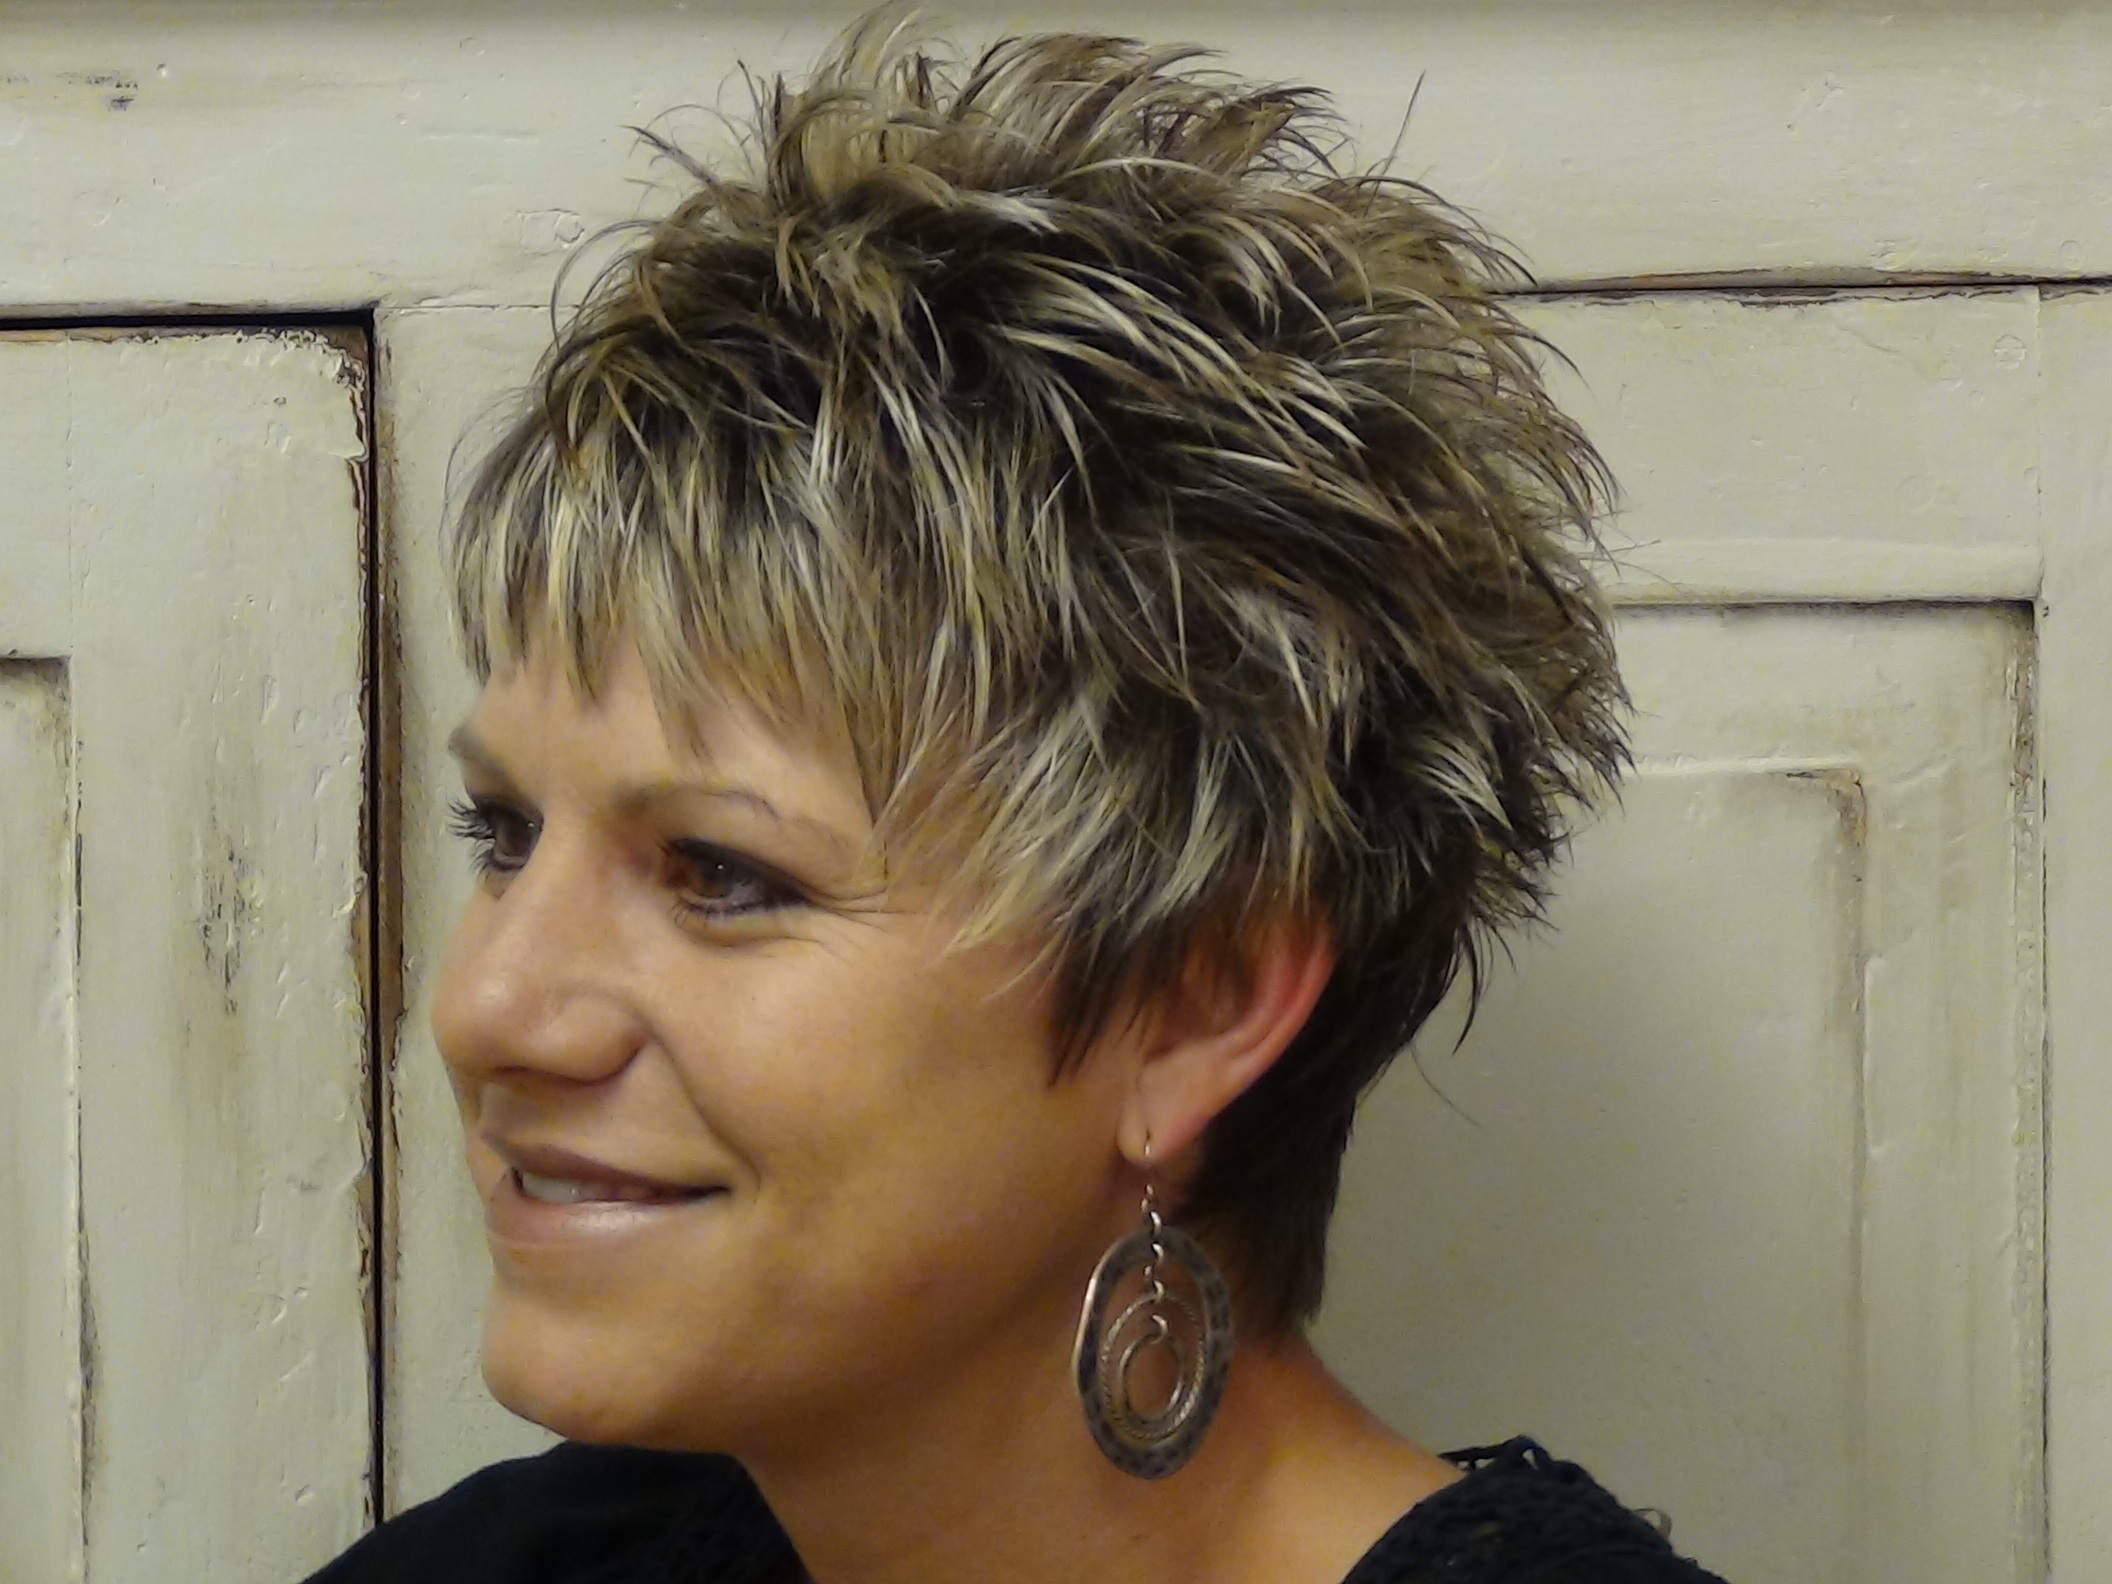 long hair in front and short in back hairstyles - short hairstyles